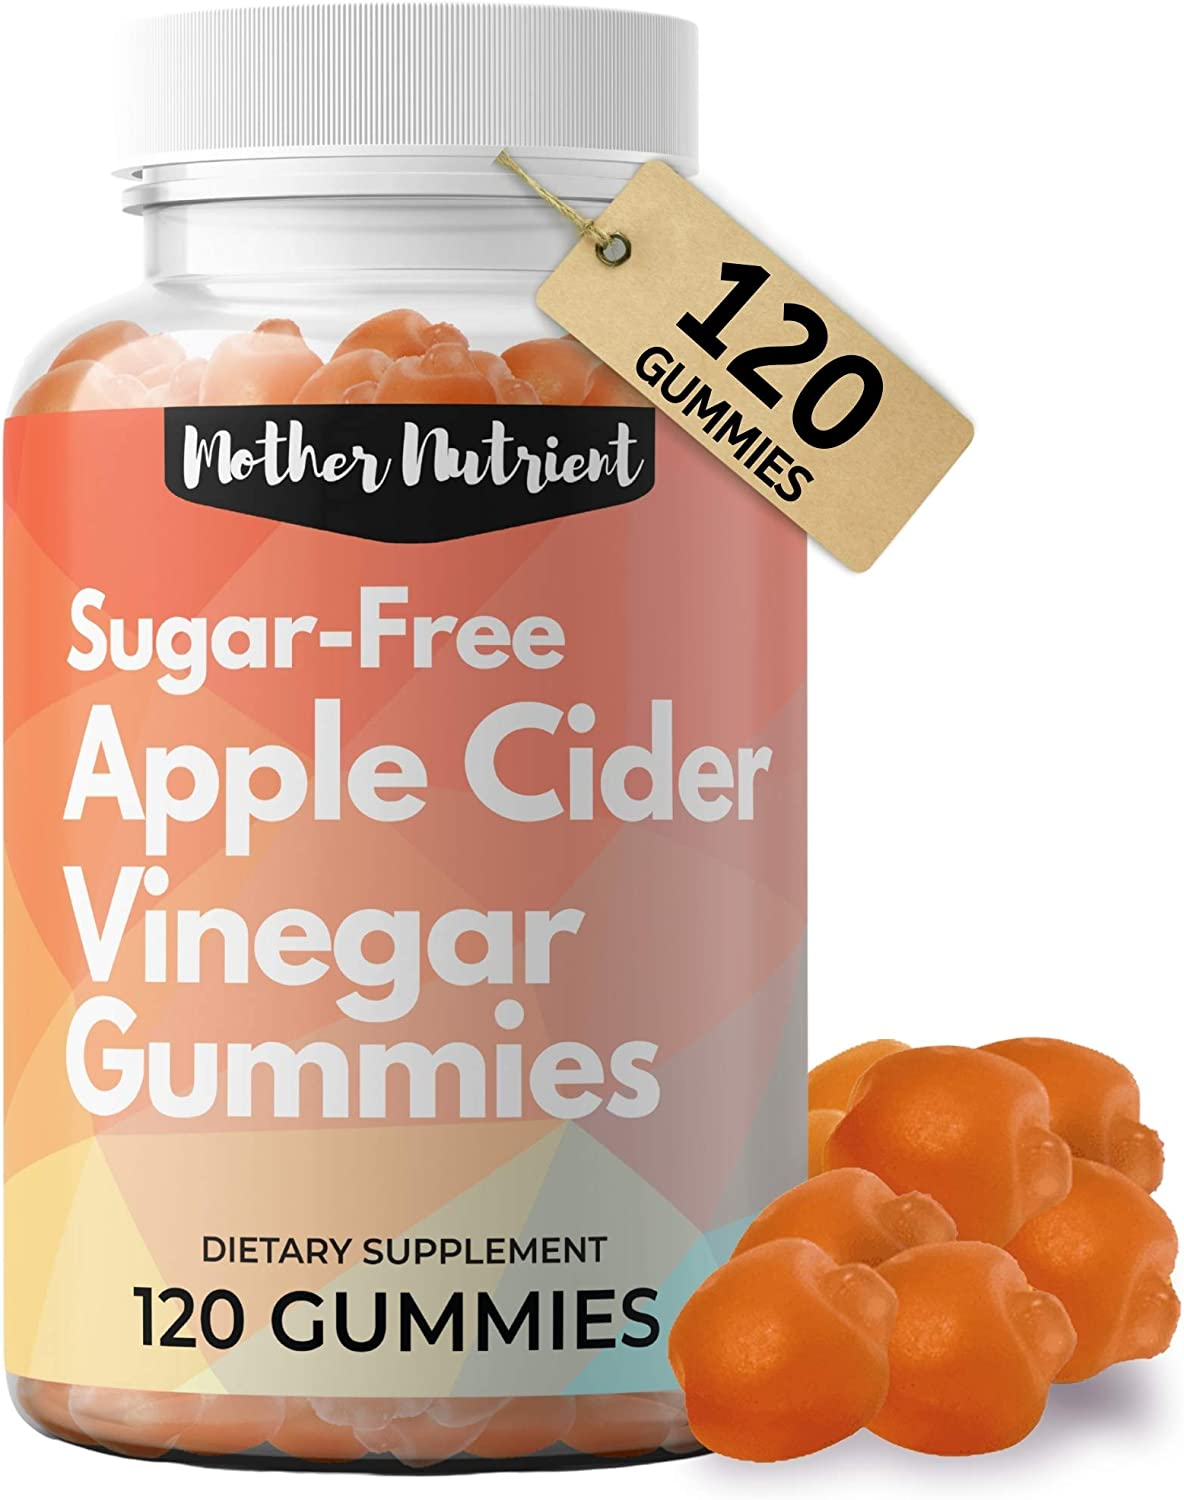 Mother Nutrient - Sugar Free Apple Cider Vinegar Gummies - 750mg - with The Mother, Gluten Free, Immune Support, Supports Increased Energy, Aids in Digestion, Helps Relieve Bloating, 120 ACV Gummies